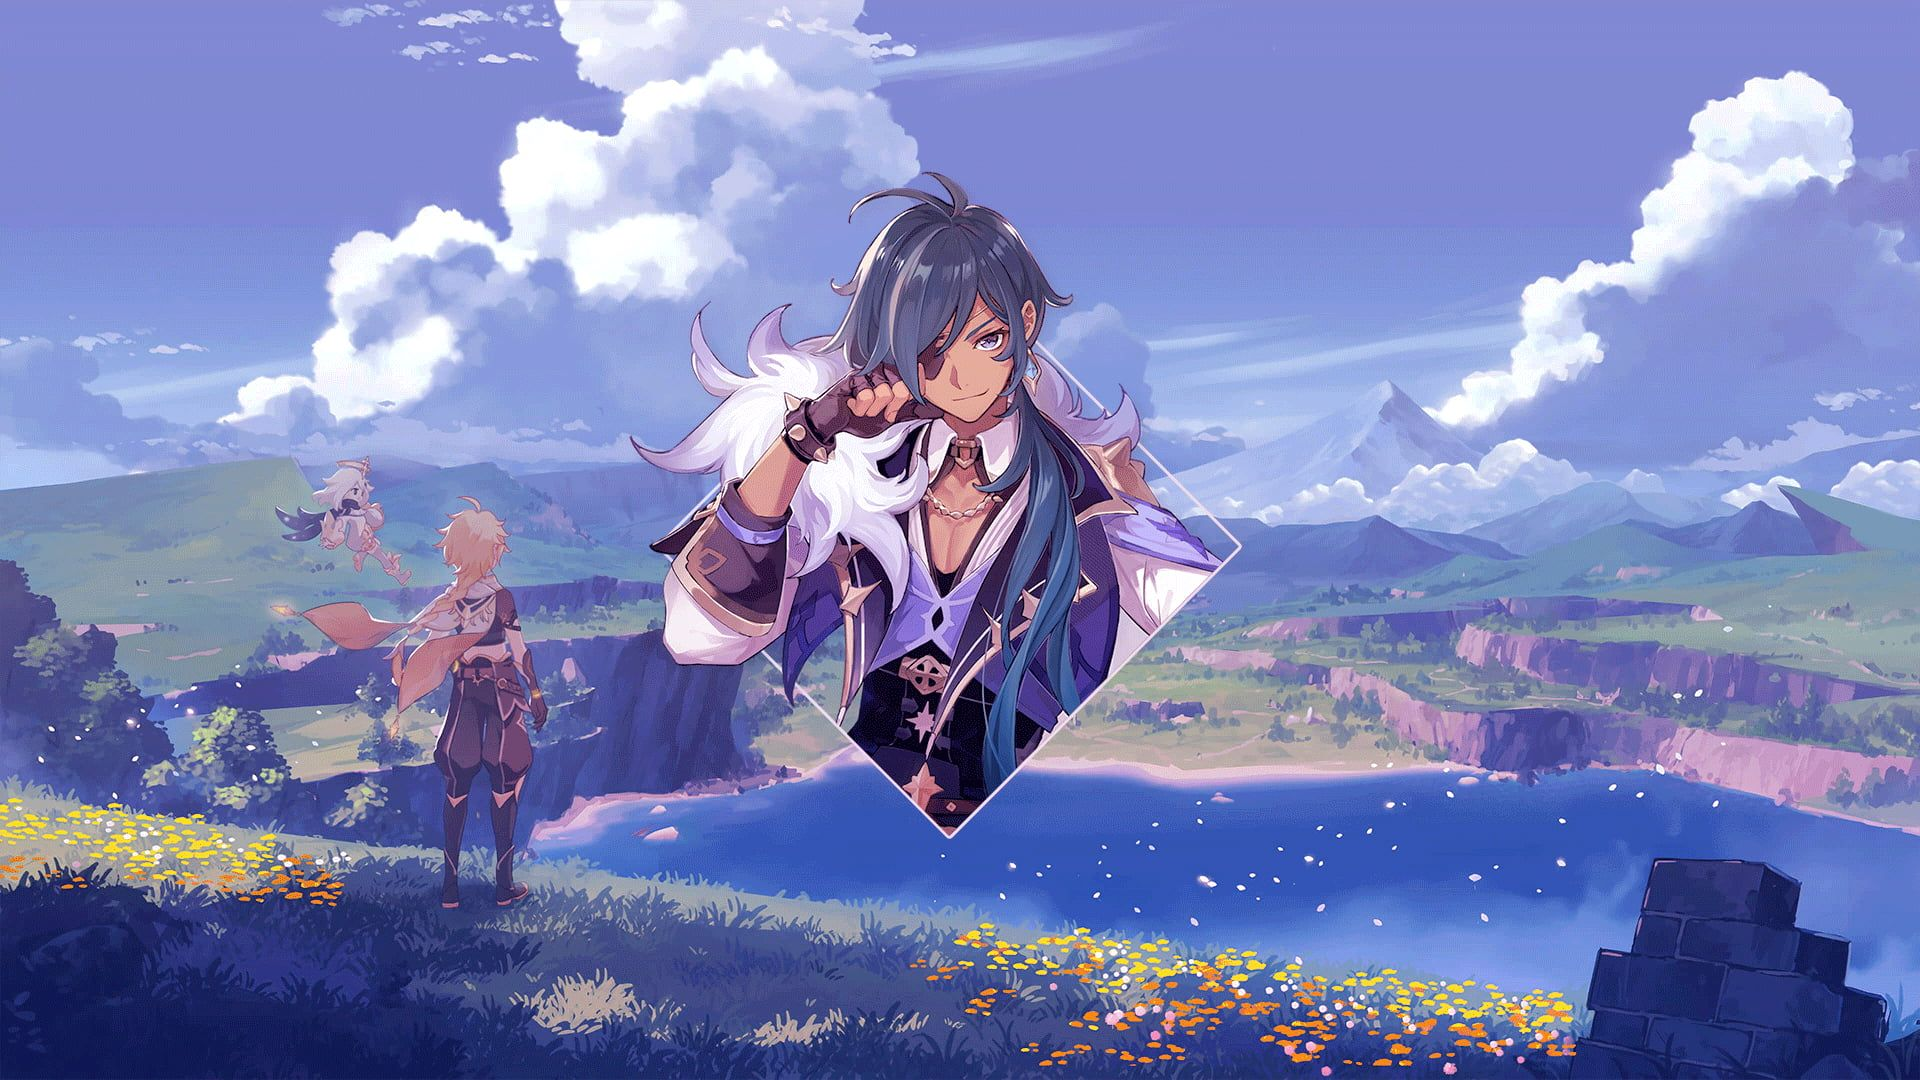 Anime Anime Boys Genshin Impact Kaeya Digital Art Photoshop Picture In Picture Piture In Picture Anime Landscape V Photoshop Wallpapers Anime Boy Wallpaper